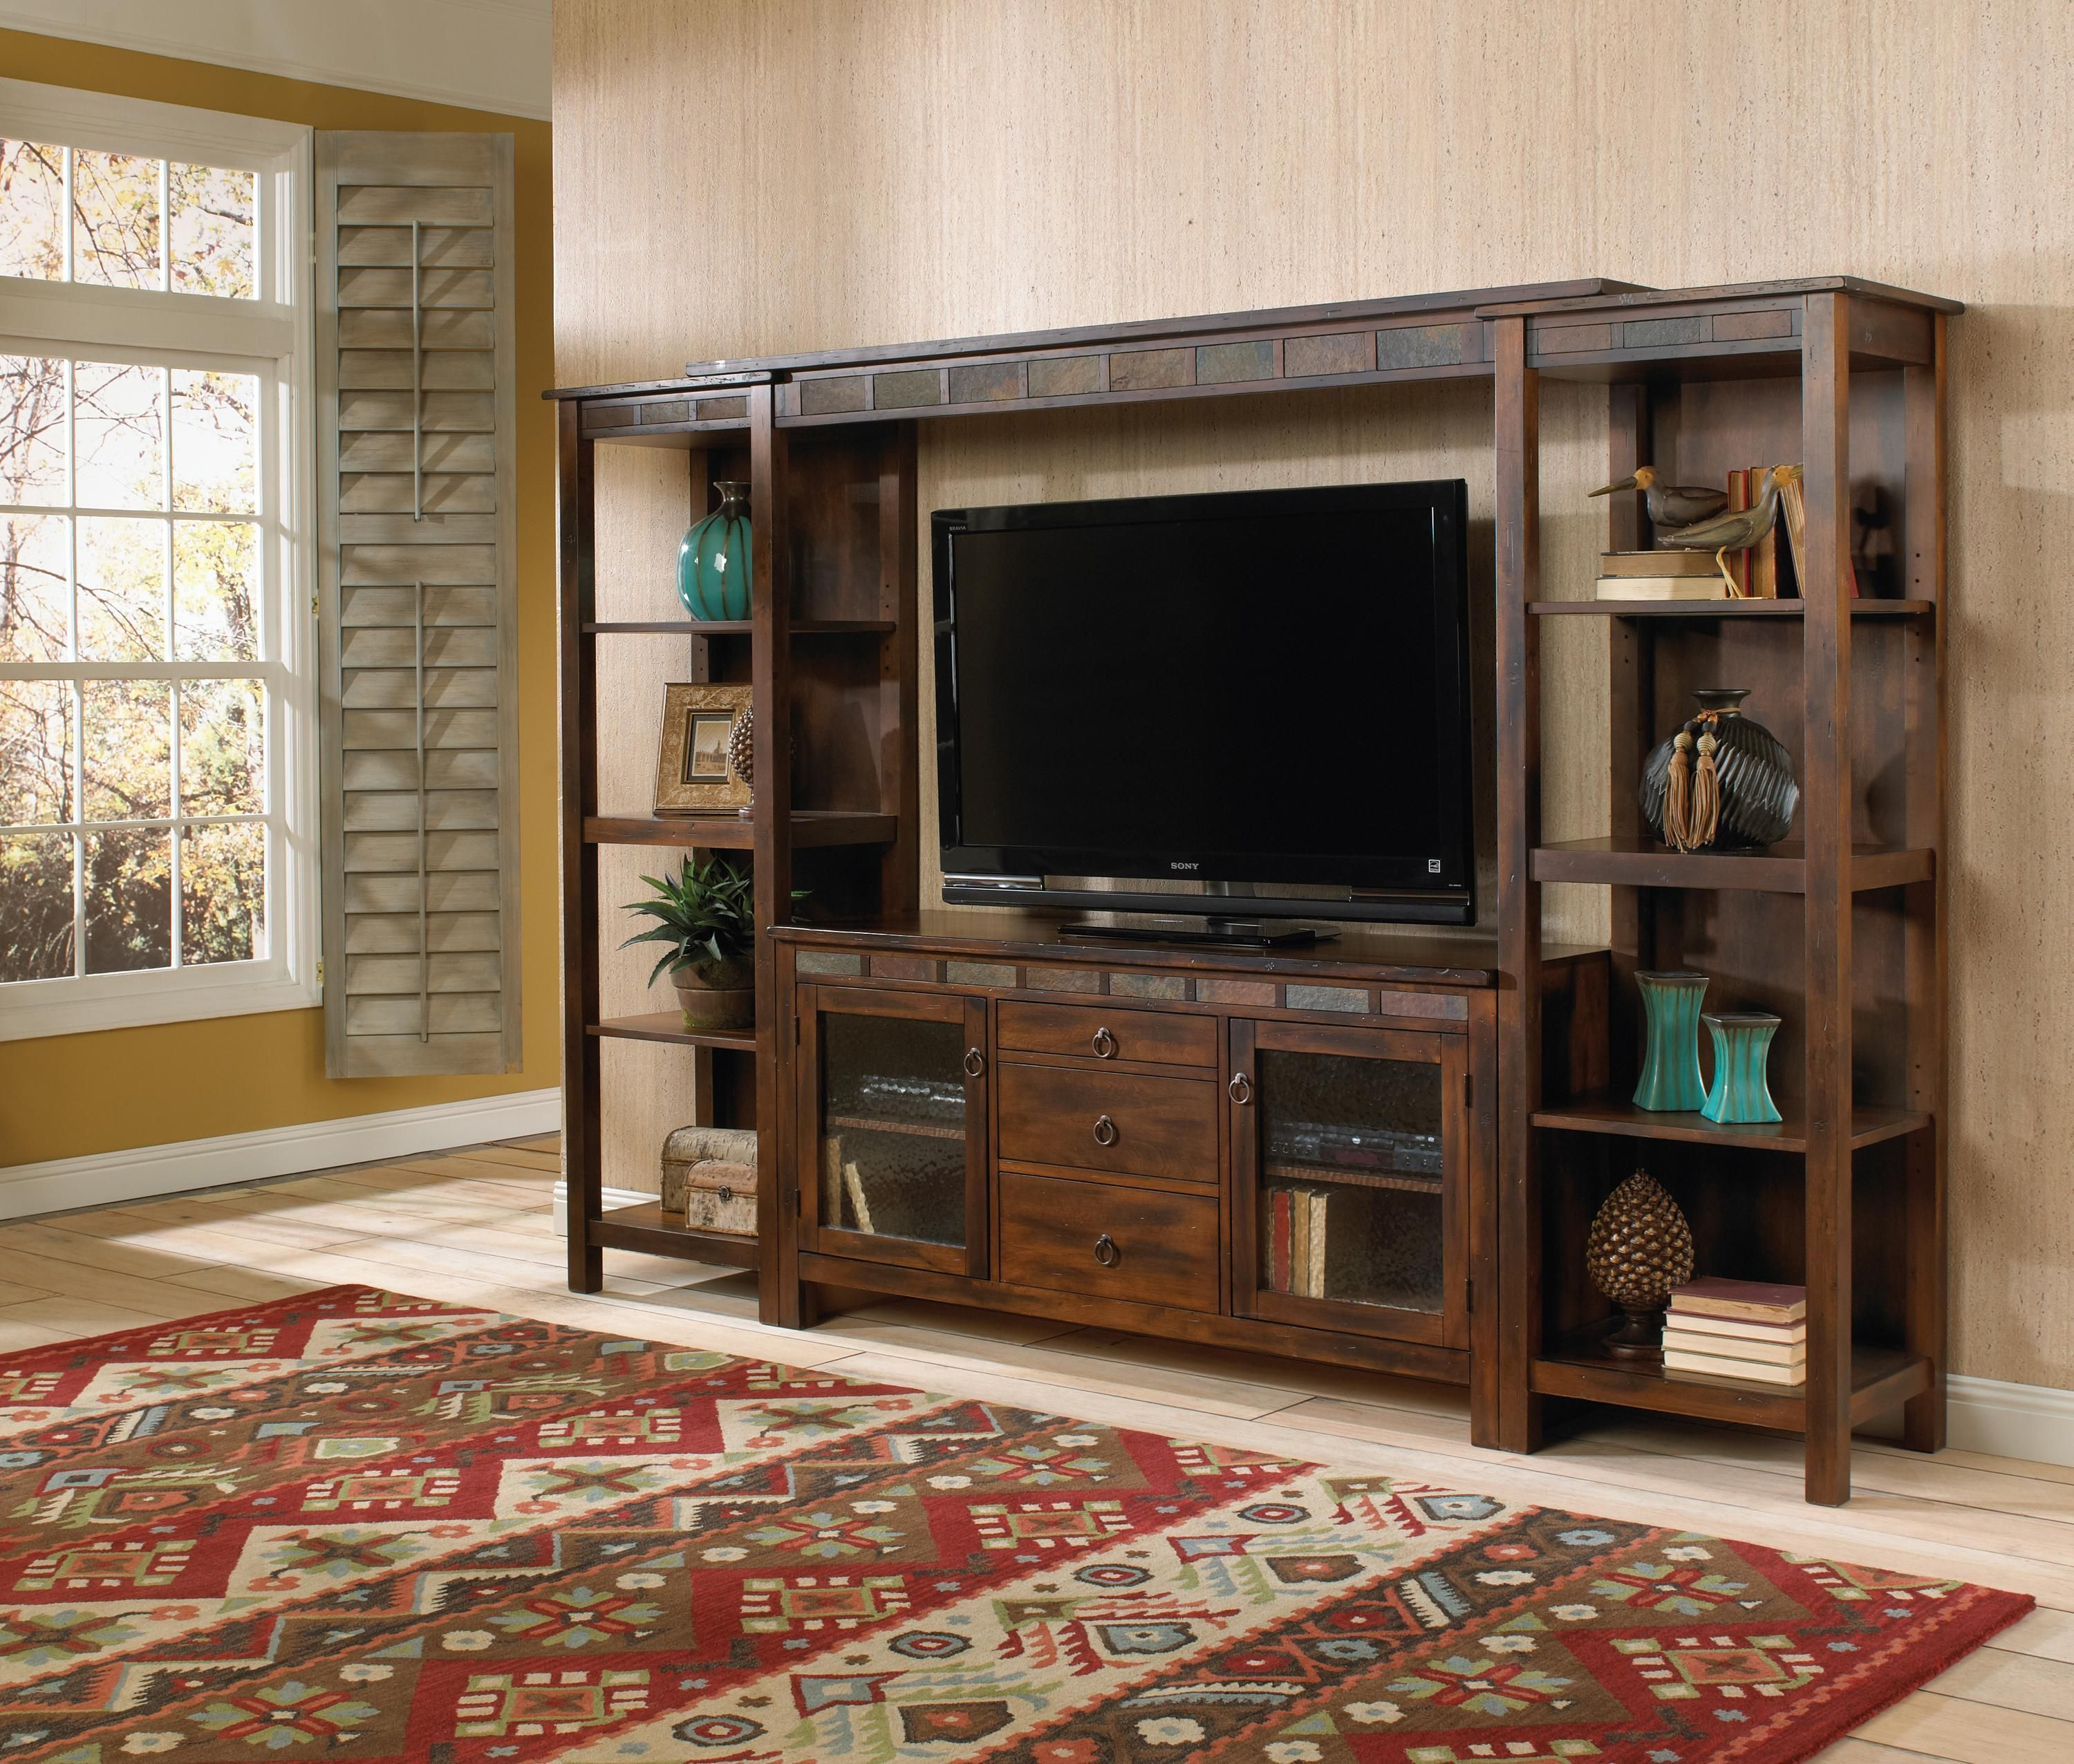 Santa Fe Rustic 108 Inch Open Display Wall Unit By Sunny Designs At Conlin S Furniture Entertainment Center Rustic Entertainment Center Entertainment Wall